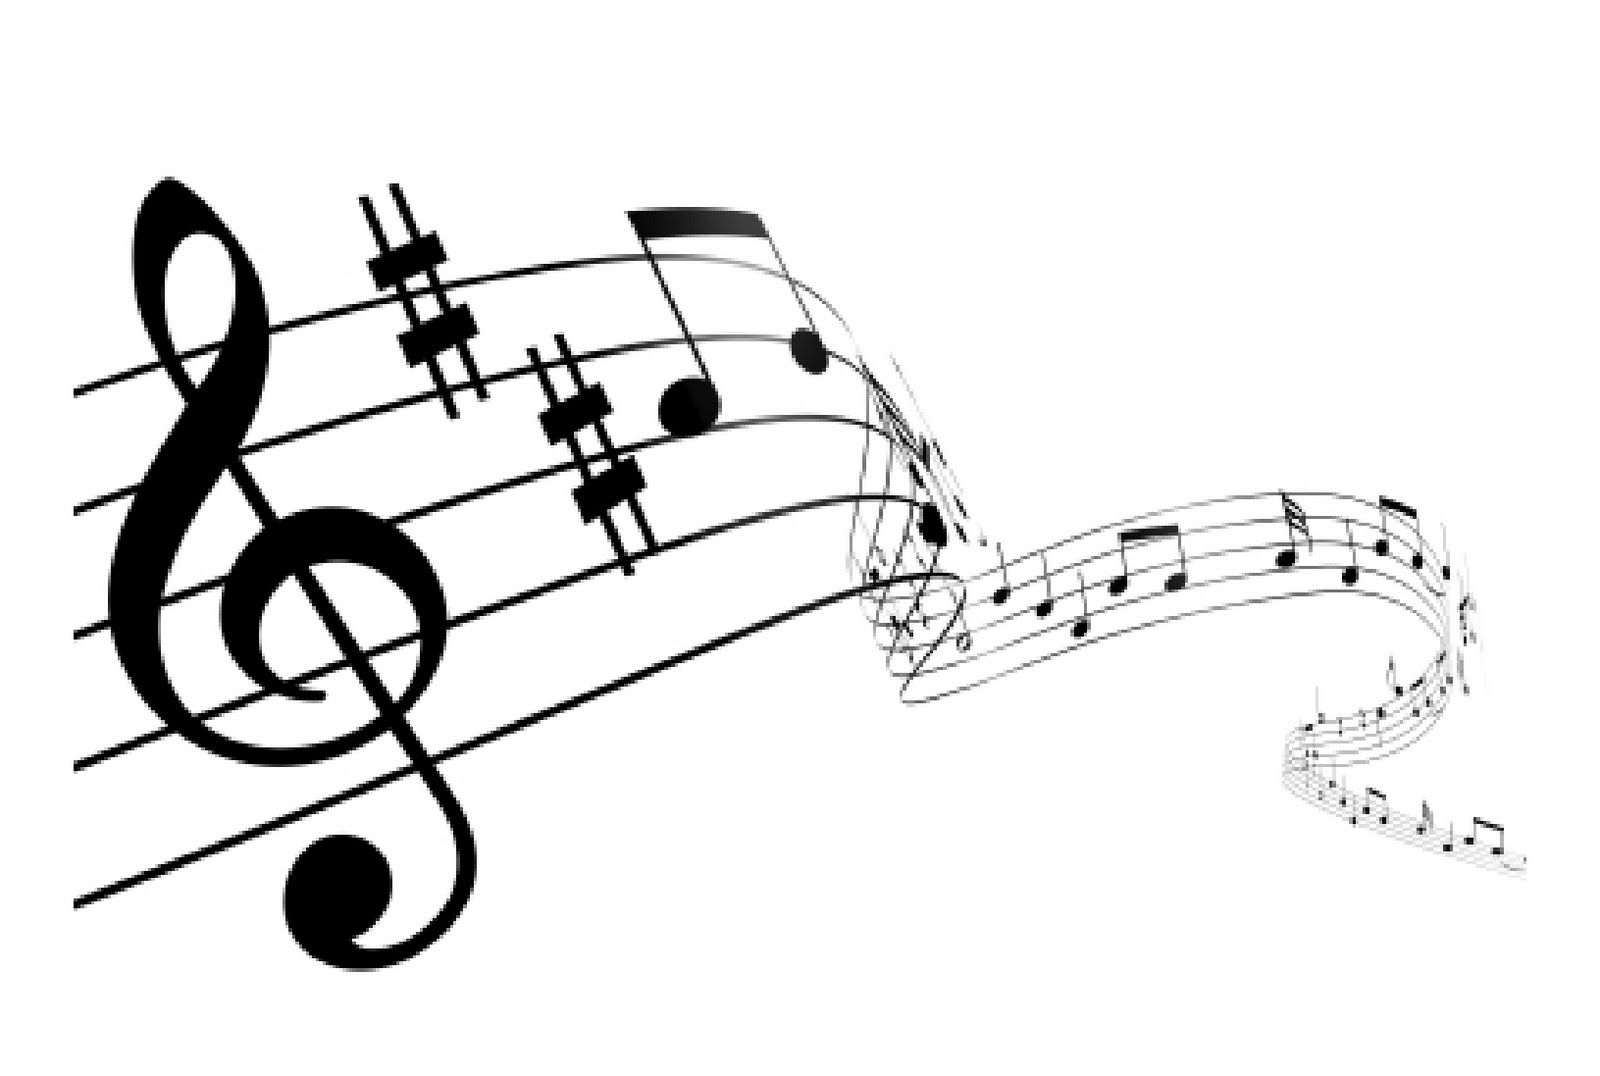 Music Sheet Wallpaper 610.71 Kb